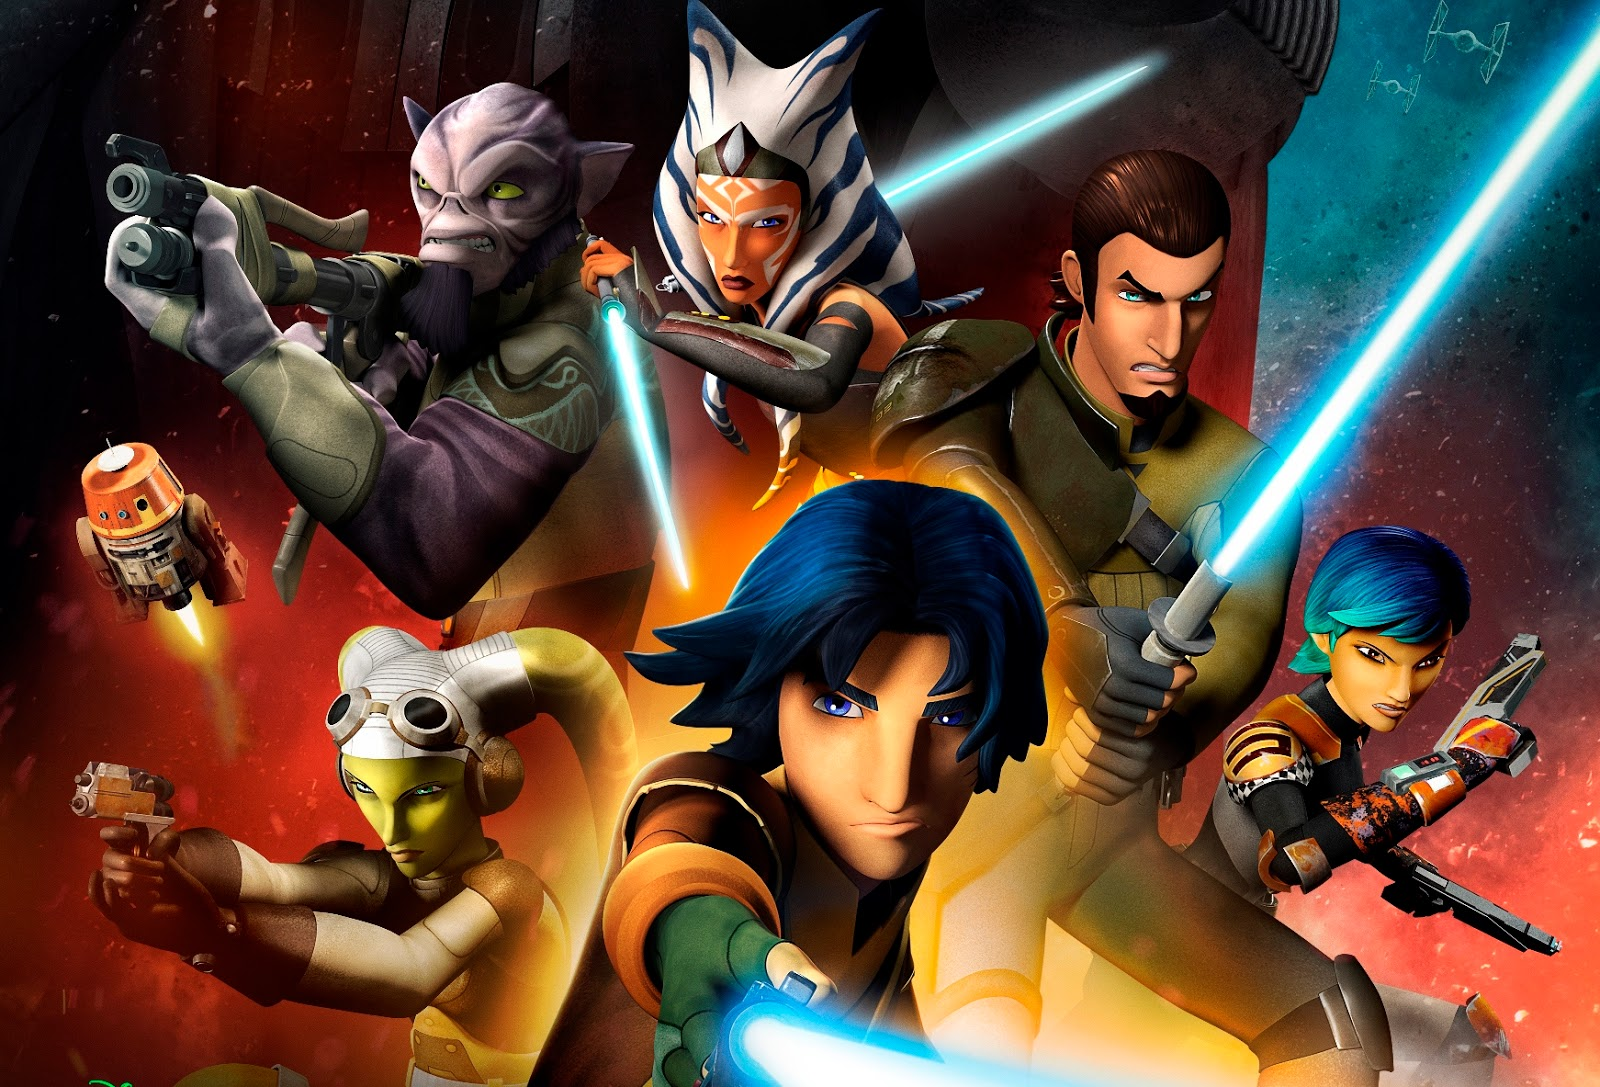 Download Star Wars Rebels Wallpaper Gallery